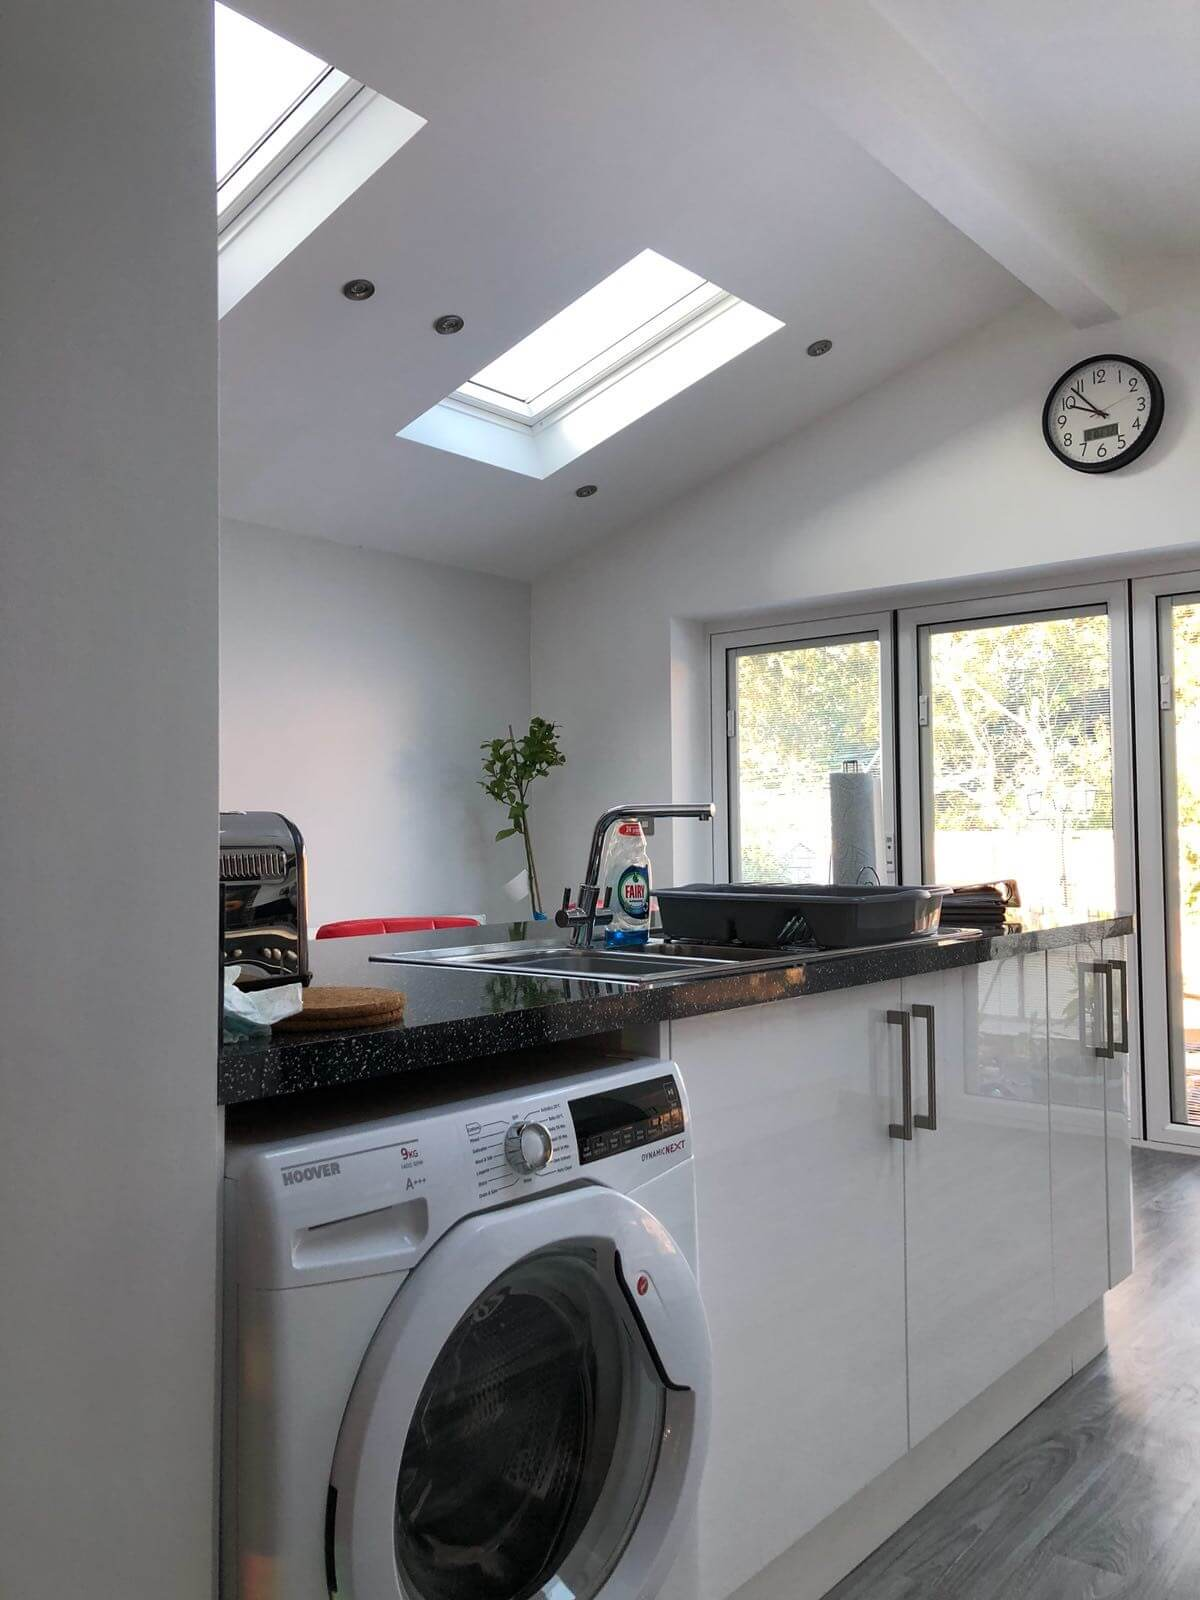 kitchen, design, installation, liverpool, celsius home improvements, extension, appliances